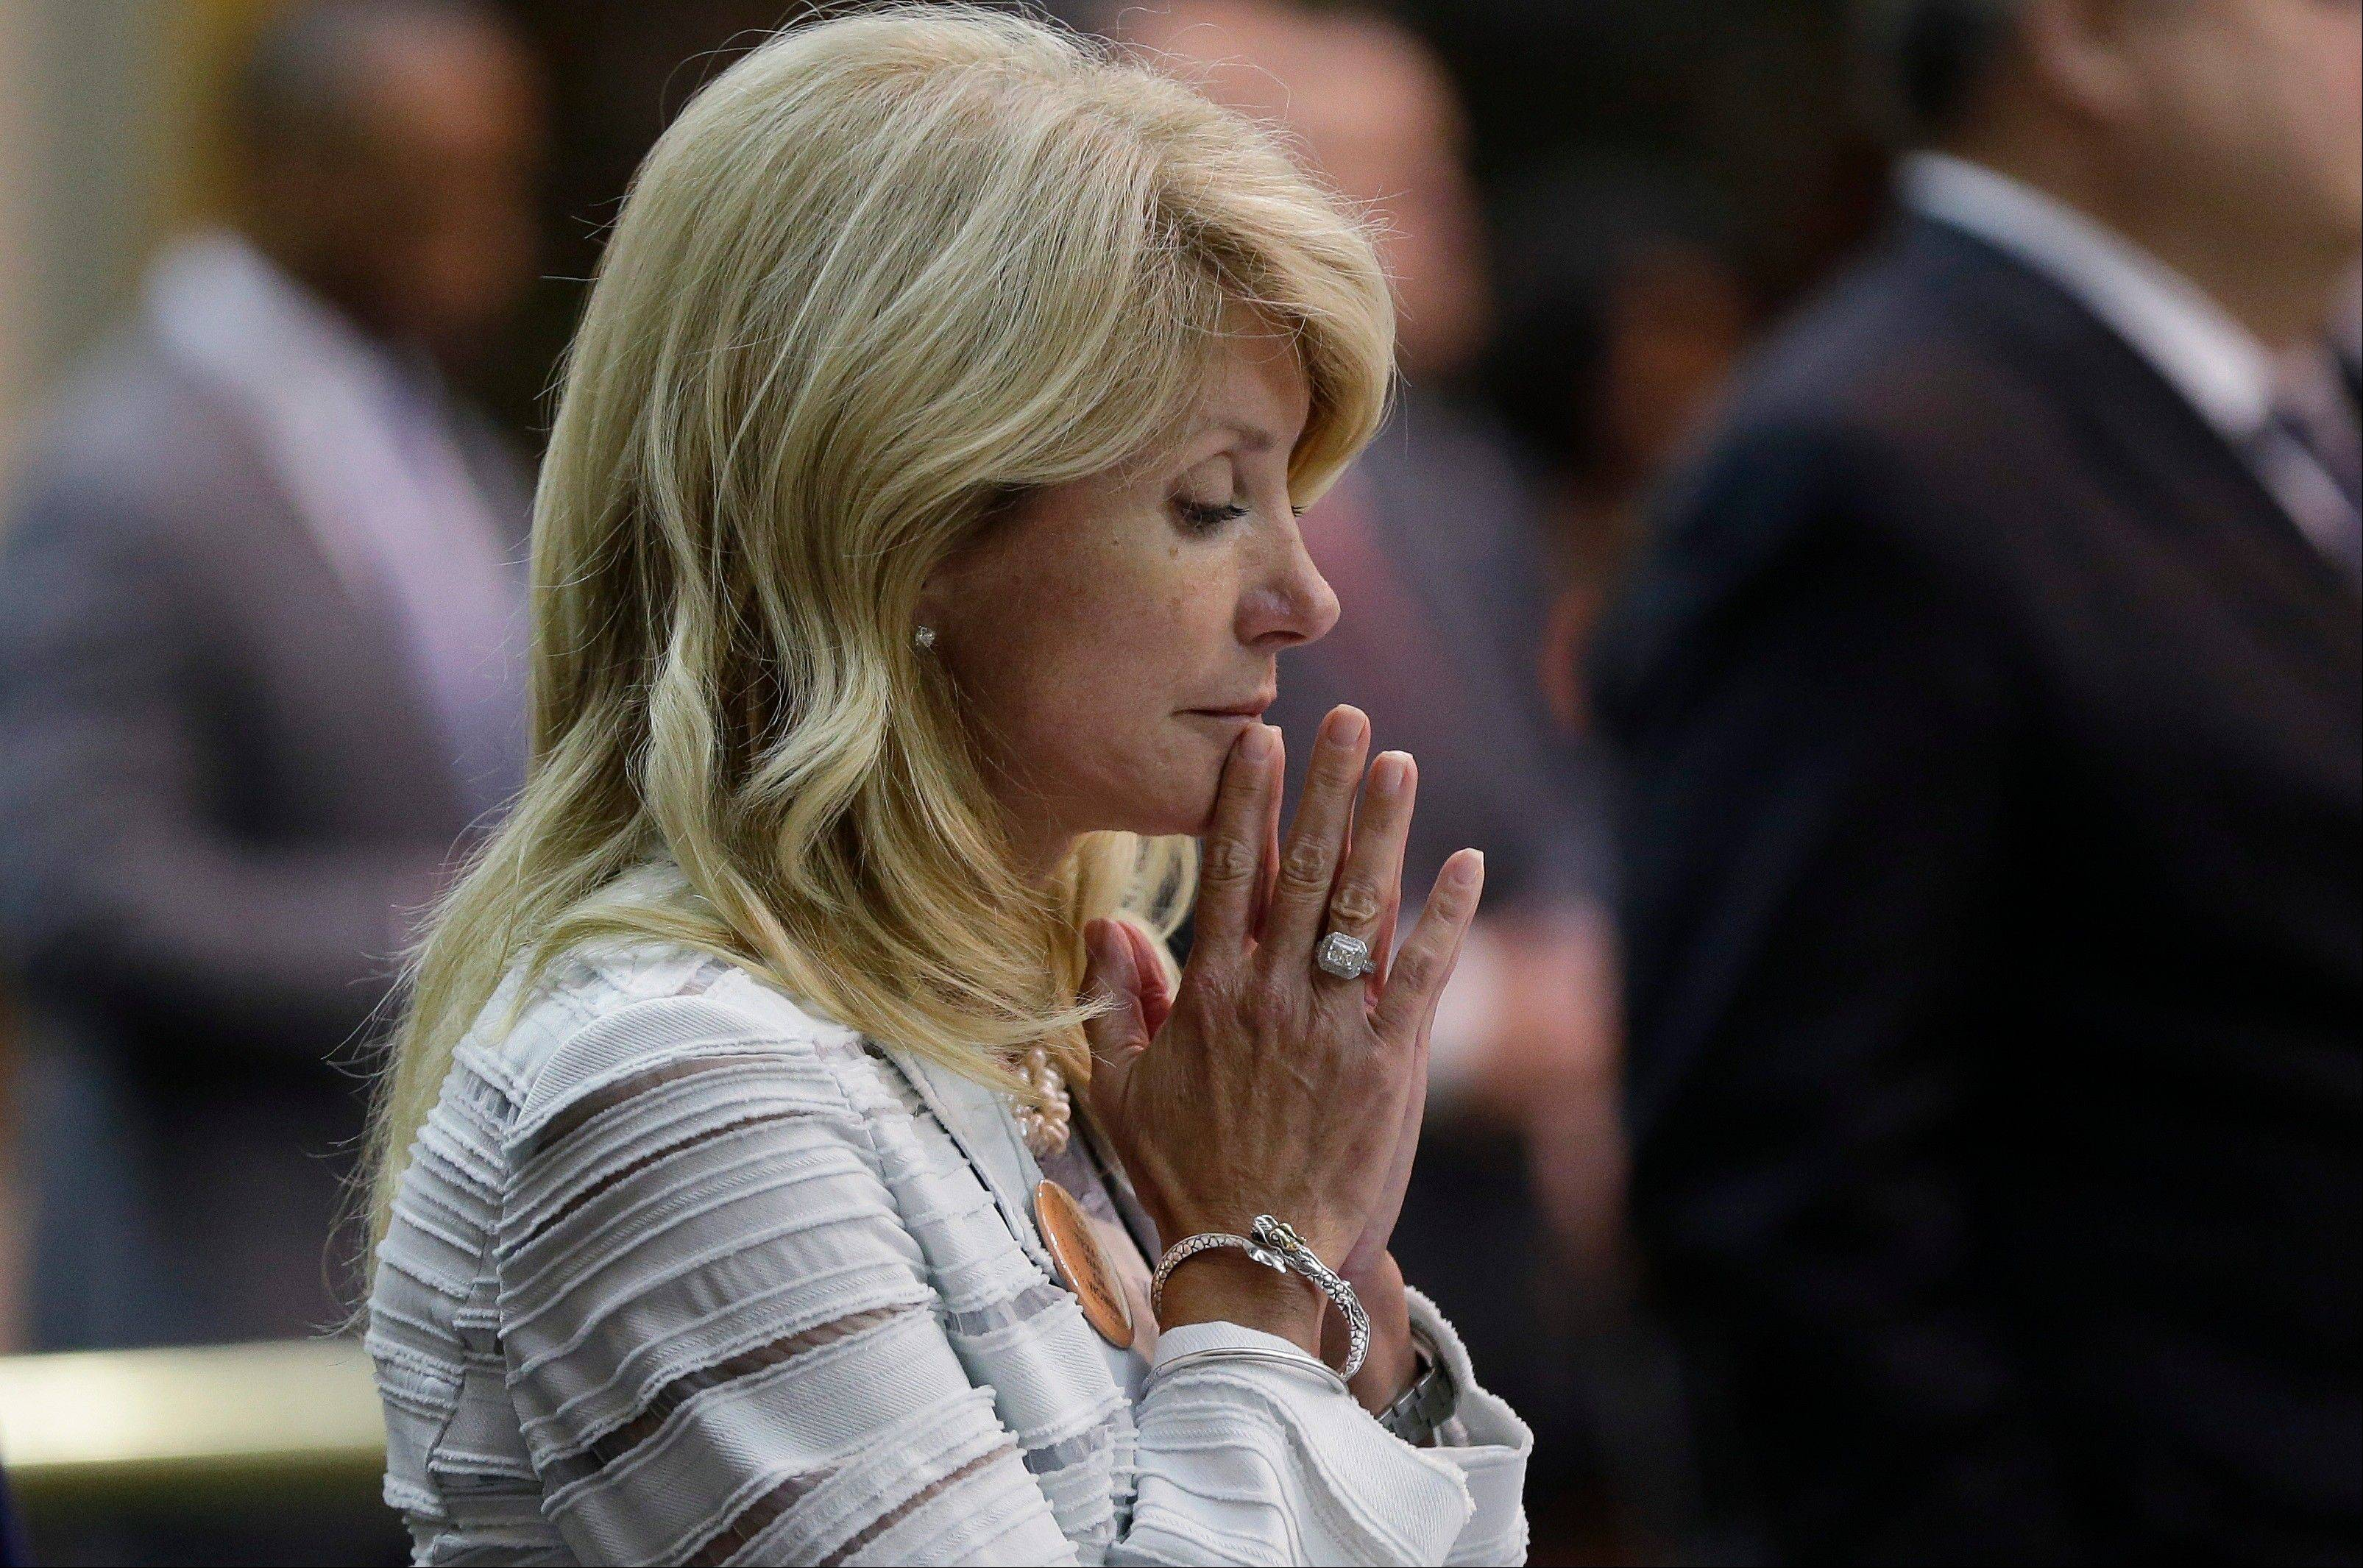 Sen. Wendy Davis, D-Fort Worth, reacts after she was called for a third and final violation in rules to end her filibuster attempt to kill an abortion bill, Tuesday, June 25, 2013, in Austin, Texas. The bill would ban abortion after 20 weeks of pregnancy and force many clinics that perform the procedure to upgrade their facilities and be classified as ambulatory surgical centers. (AP Photo/Eric Gay)